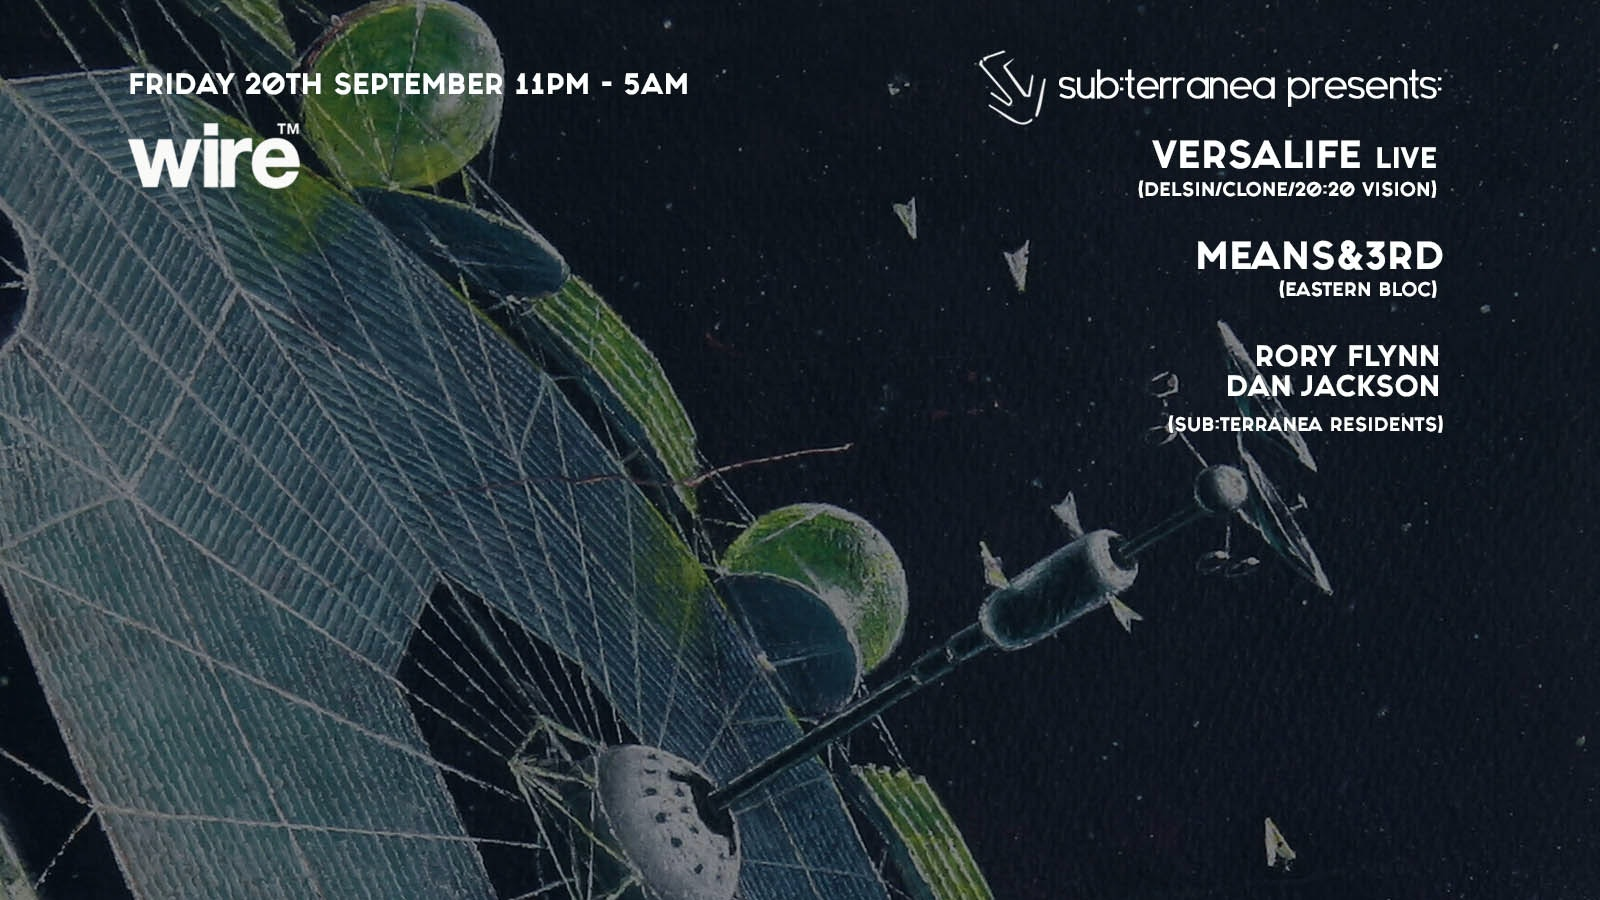 Sub:terranea presents Versalife Live and Means&3rd